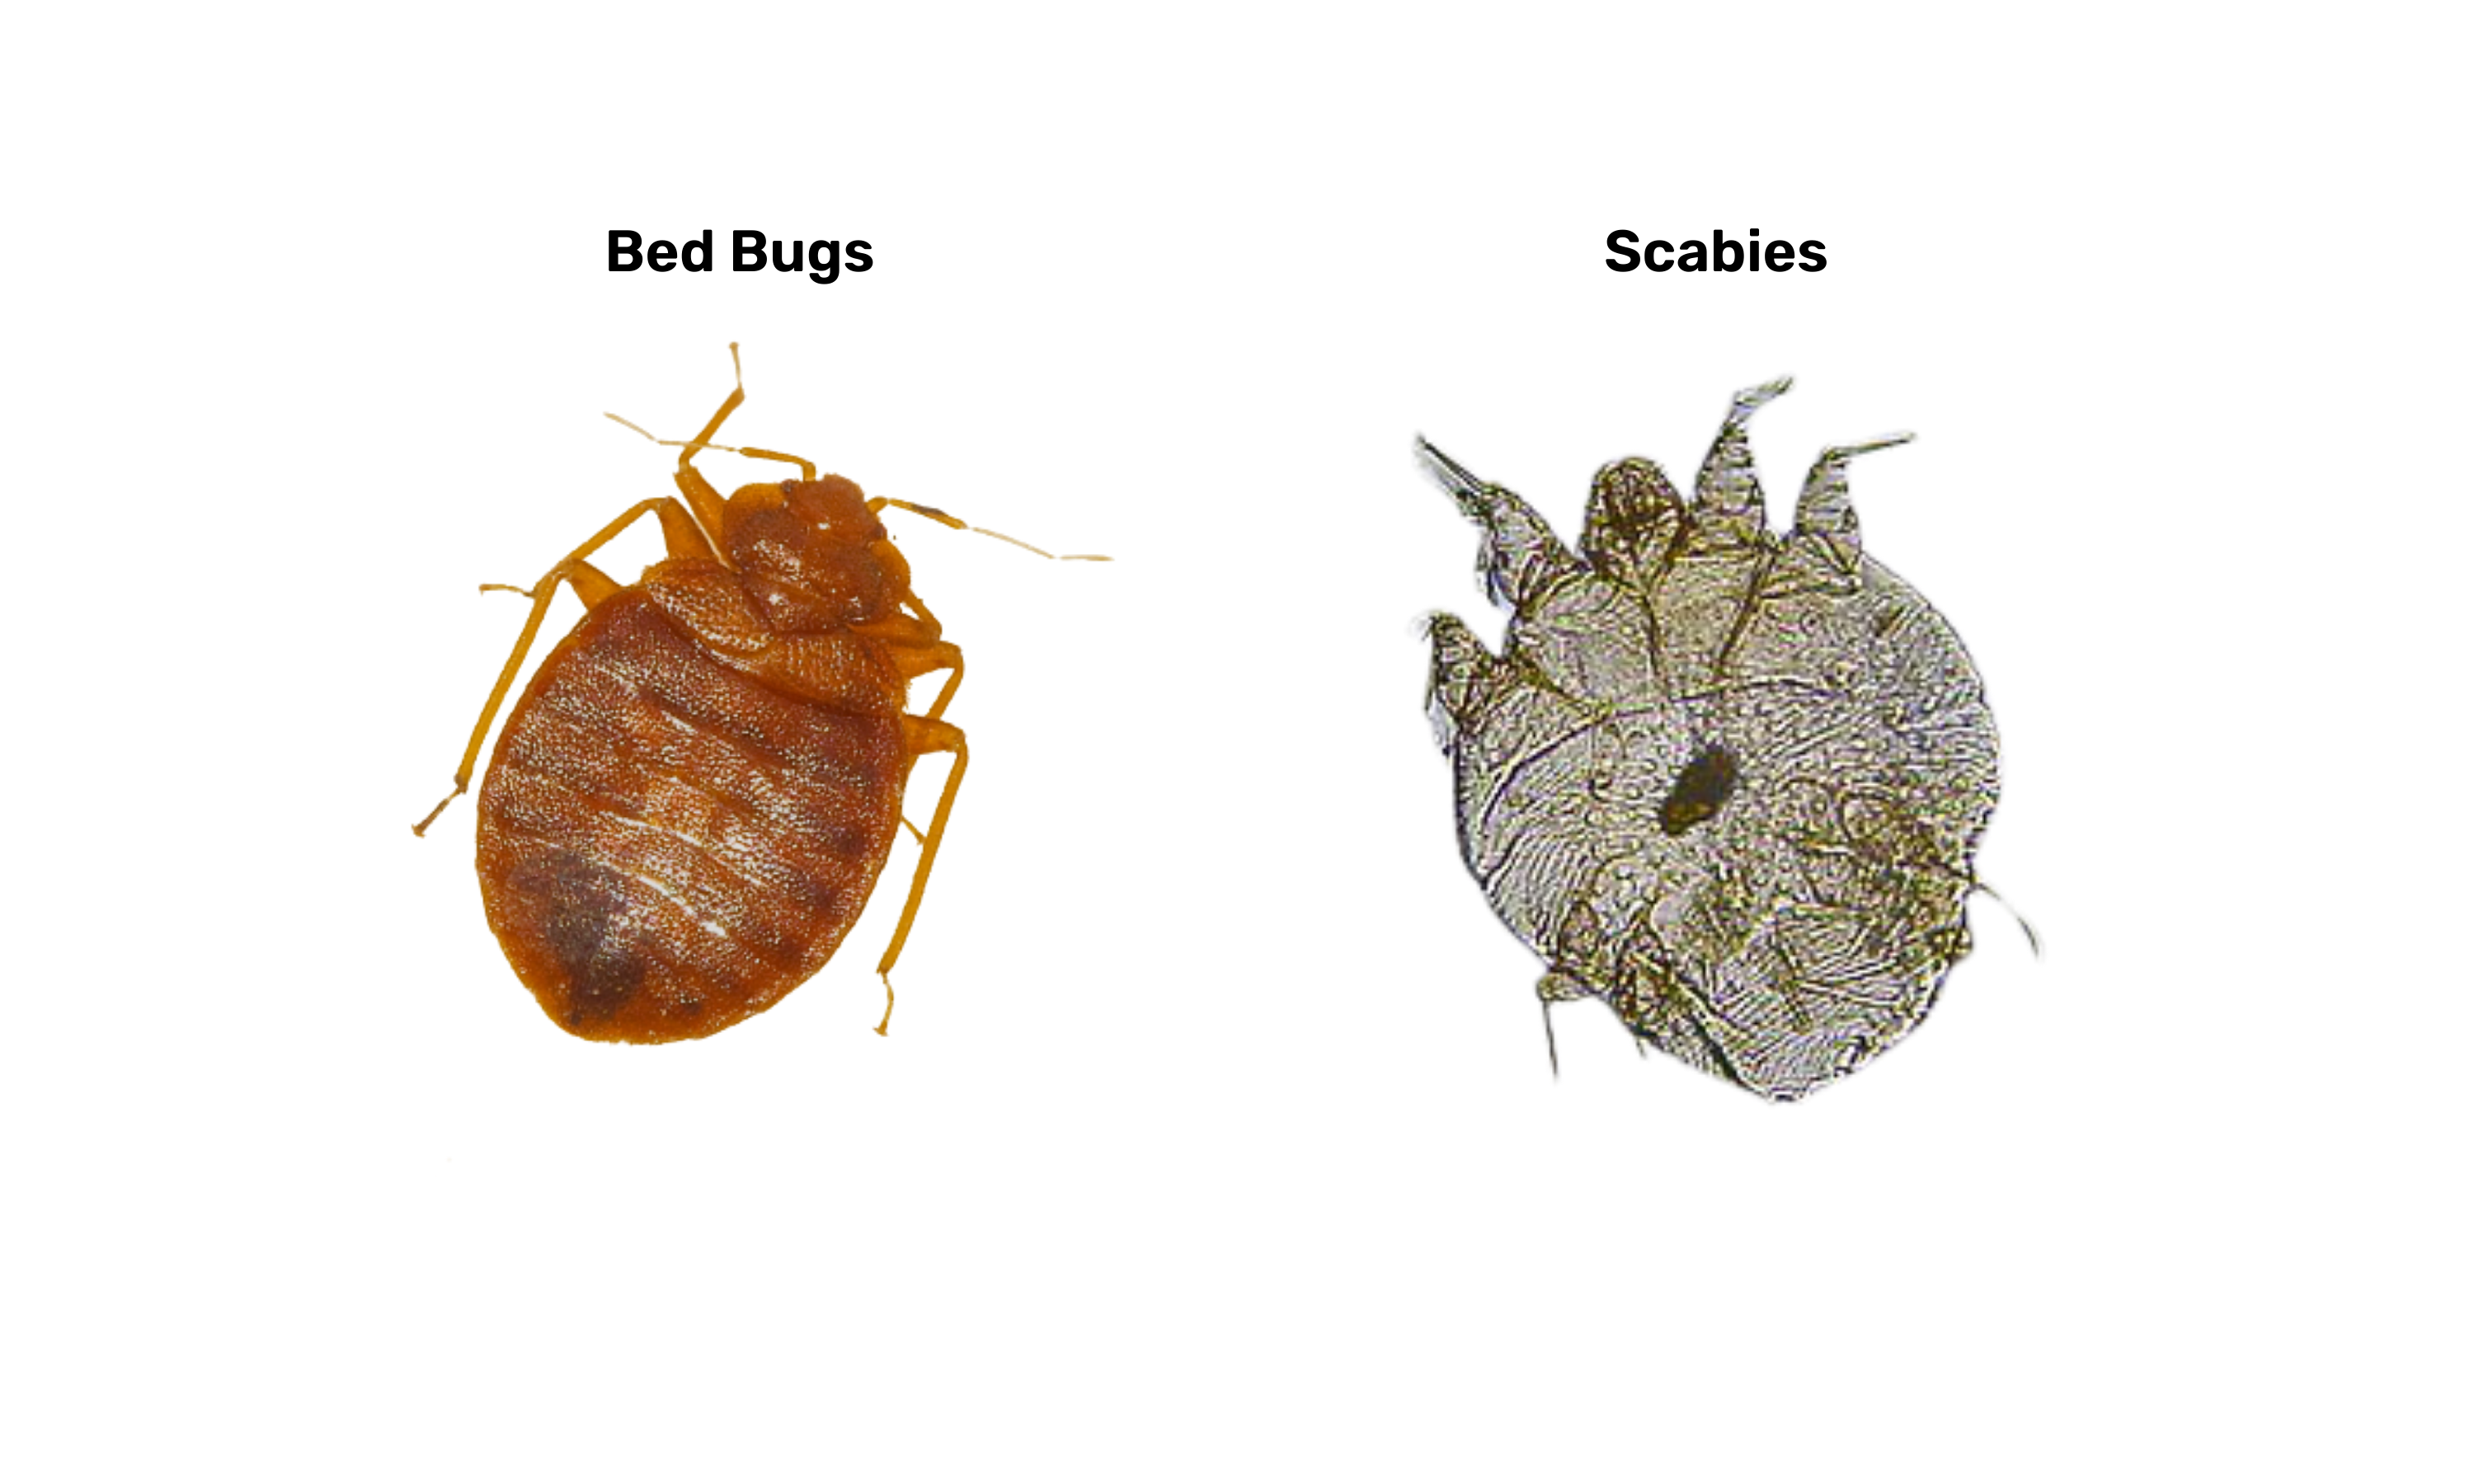 scabies vs bed bugs